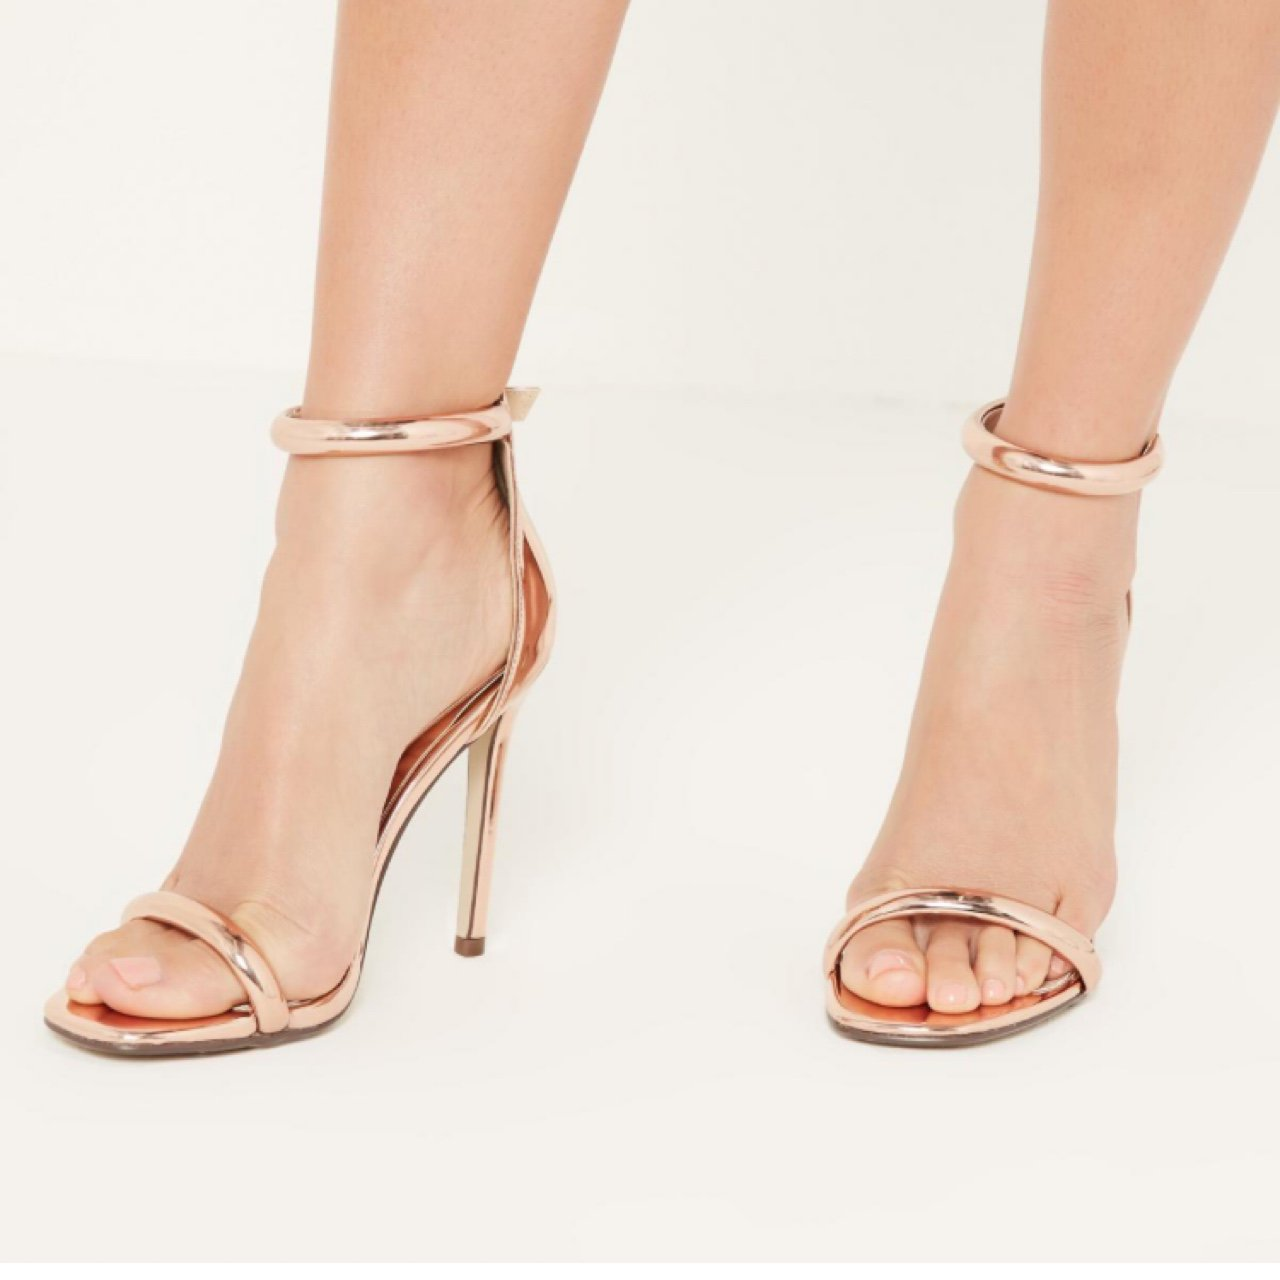 7d81c2a5c6 Rose Gold heeled sandals 👠 bought from Missguided however I - Depop